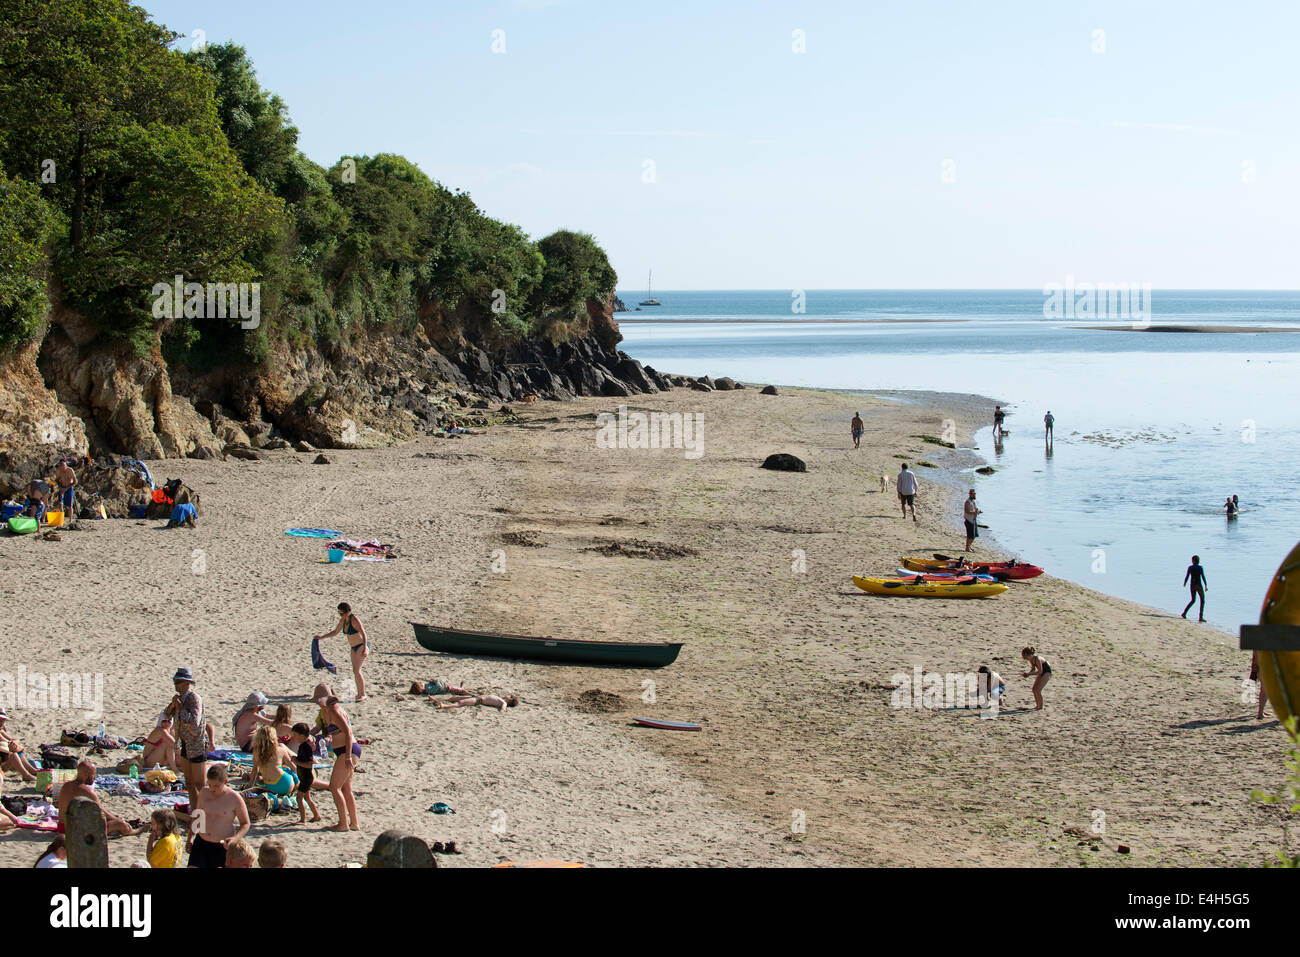 Wonwell Beach on River Erme south Devon England UK - Stock Image